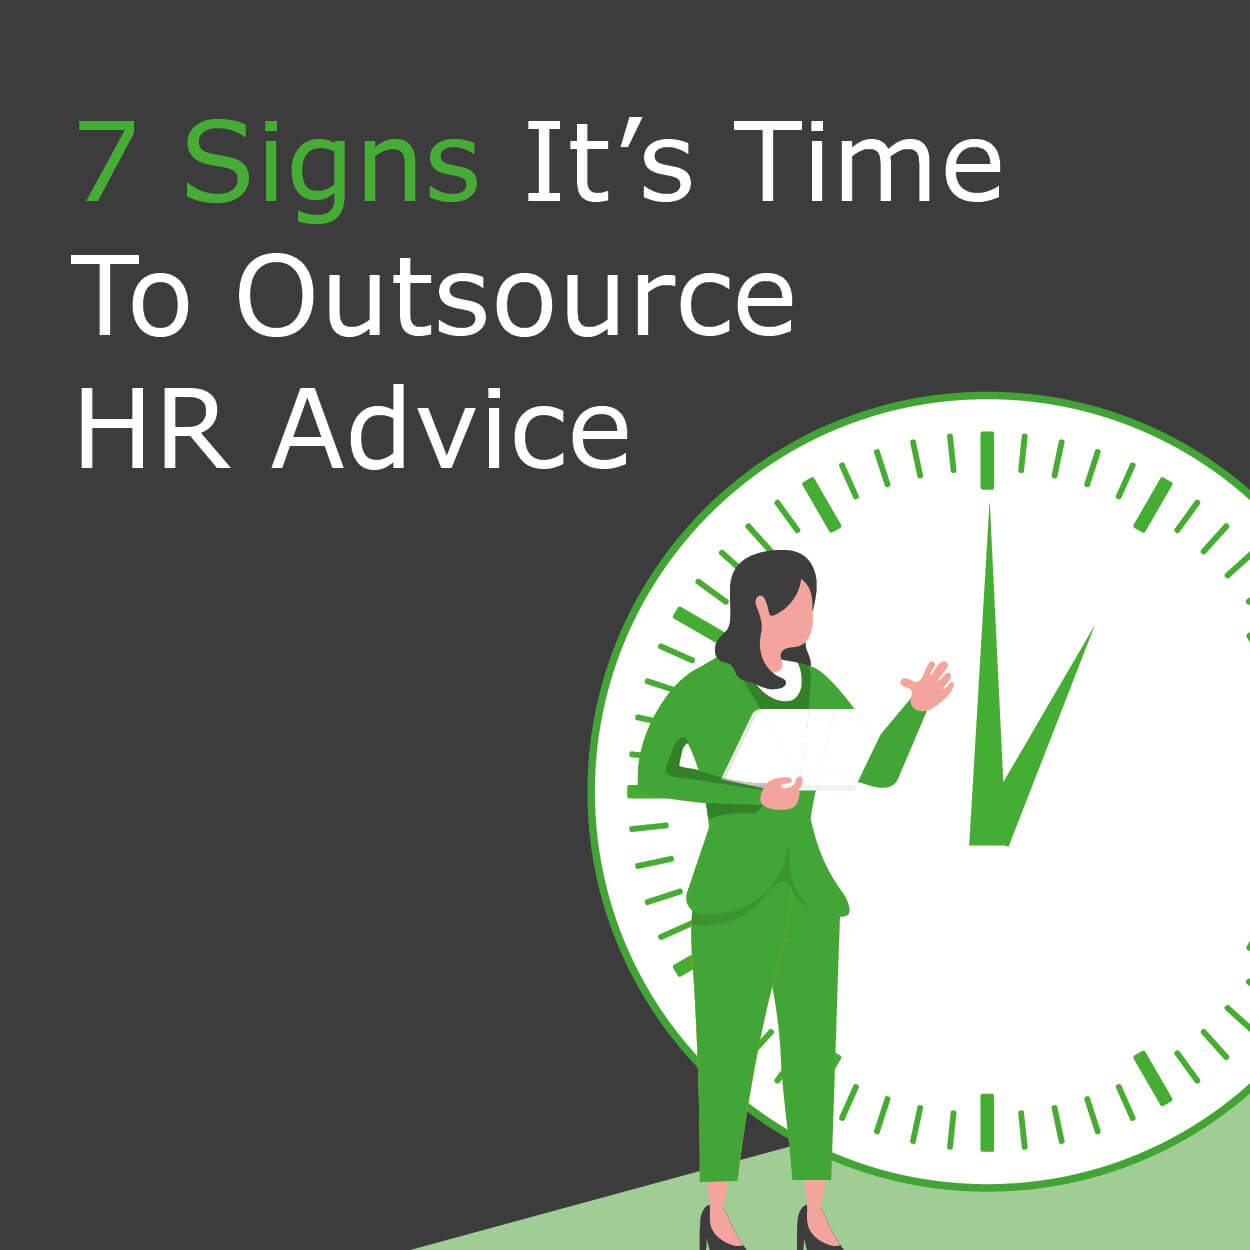 7 Signs It's Time To Outsource HR Advice website teaser 300px